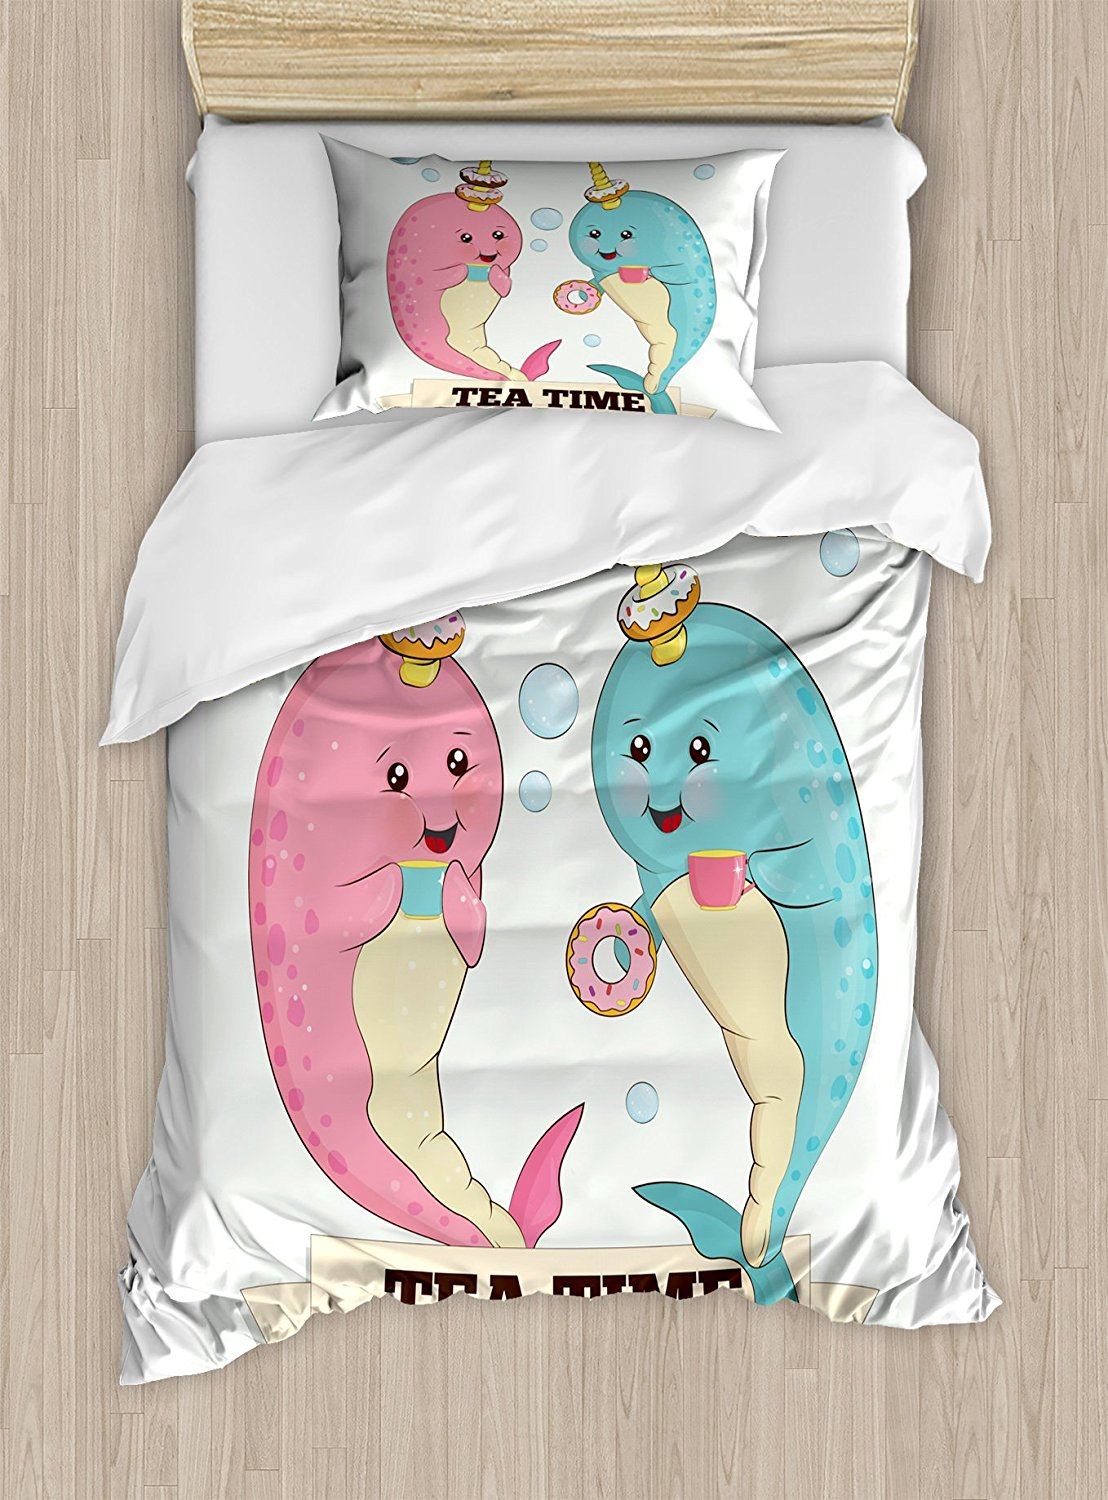 Narwhal Duvet Cover Set Tea Drinking Whales Ocean Unicorn with Abstract Bubbles Backdrop 4 Piece Bedding Set